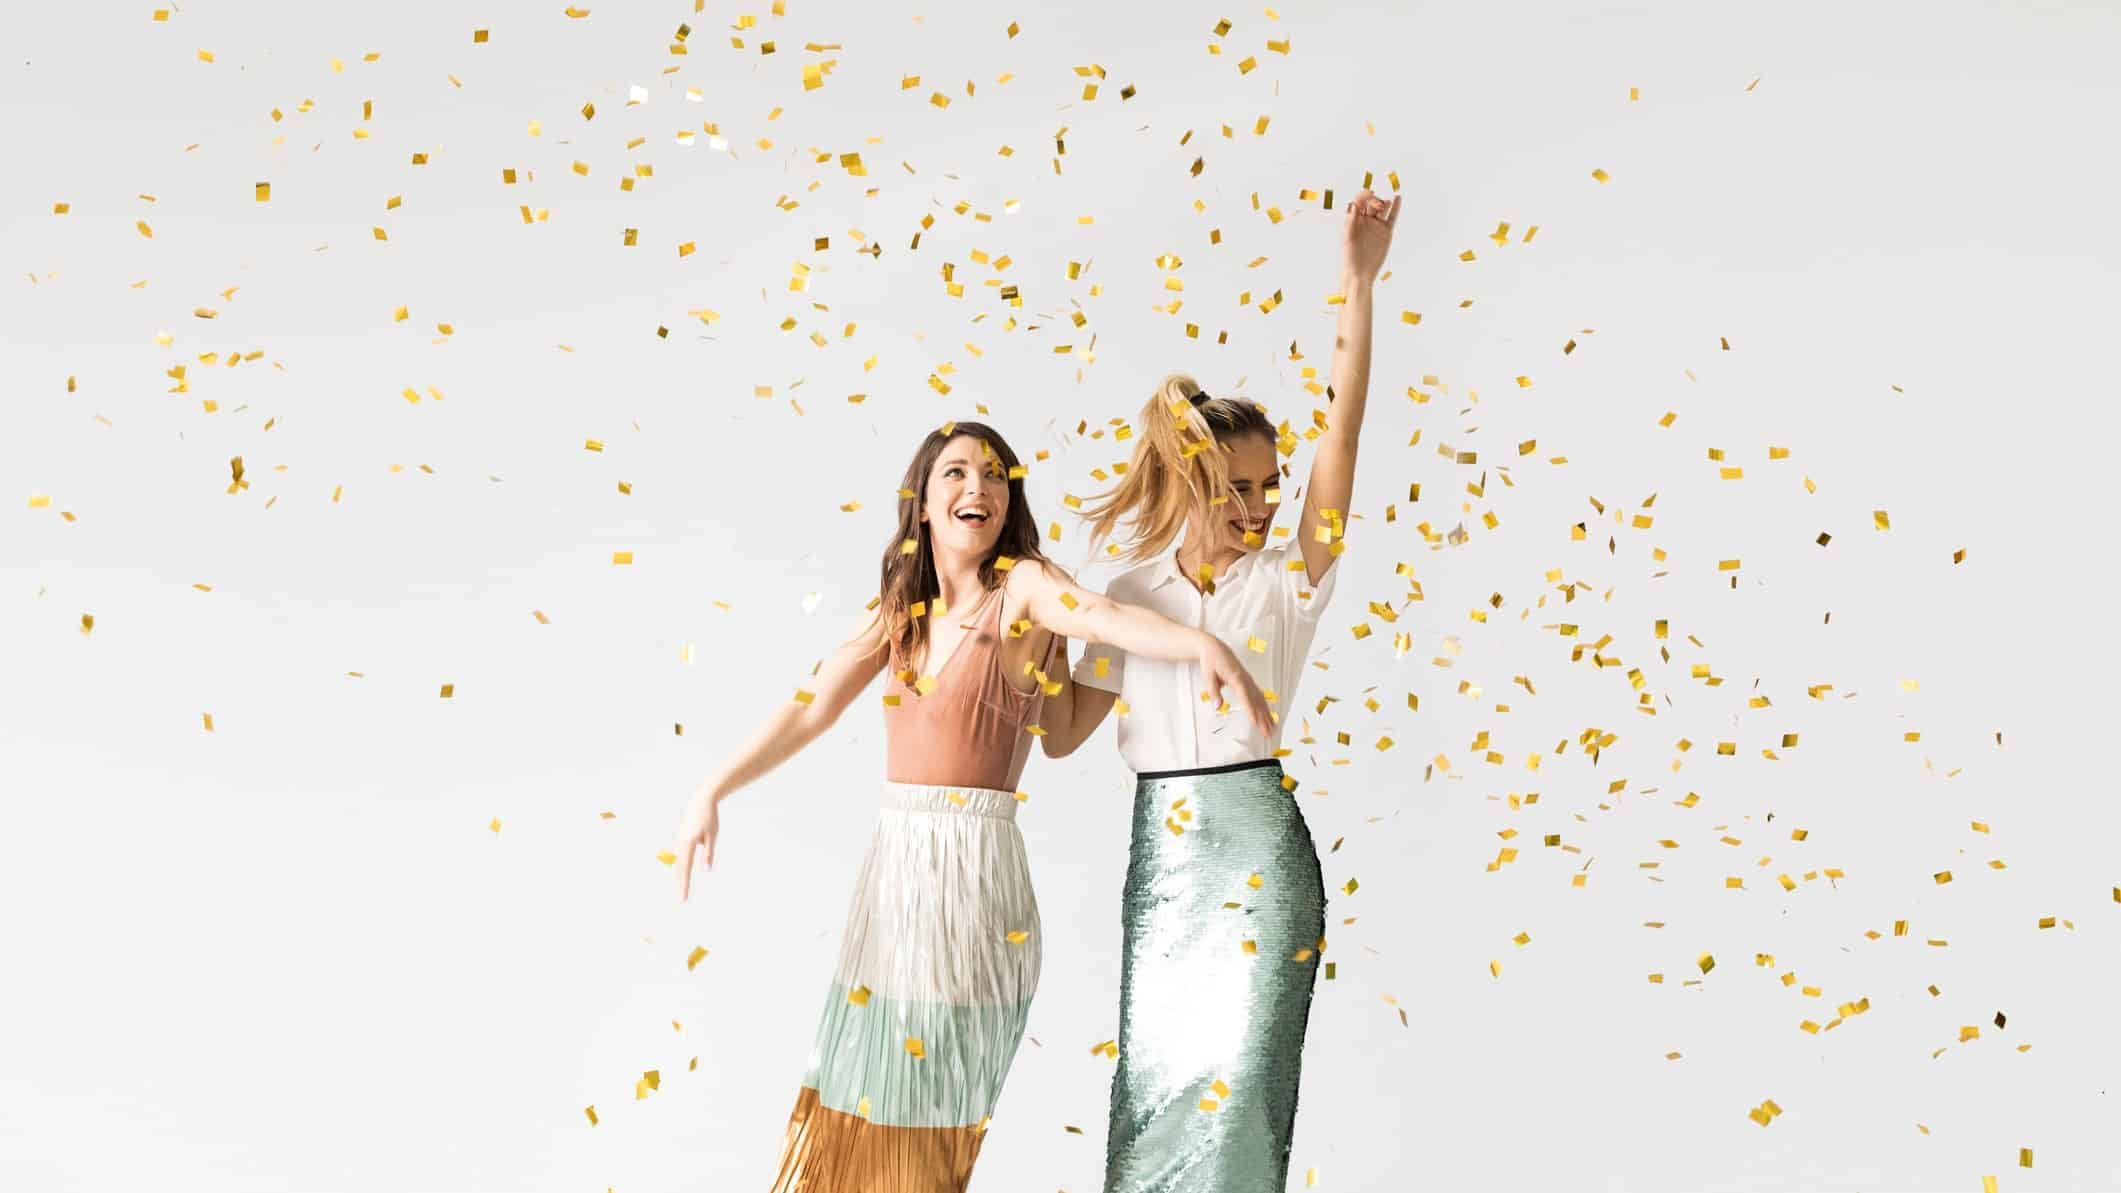 fashion asx share price rise represented by two women dancing among confetti